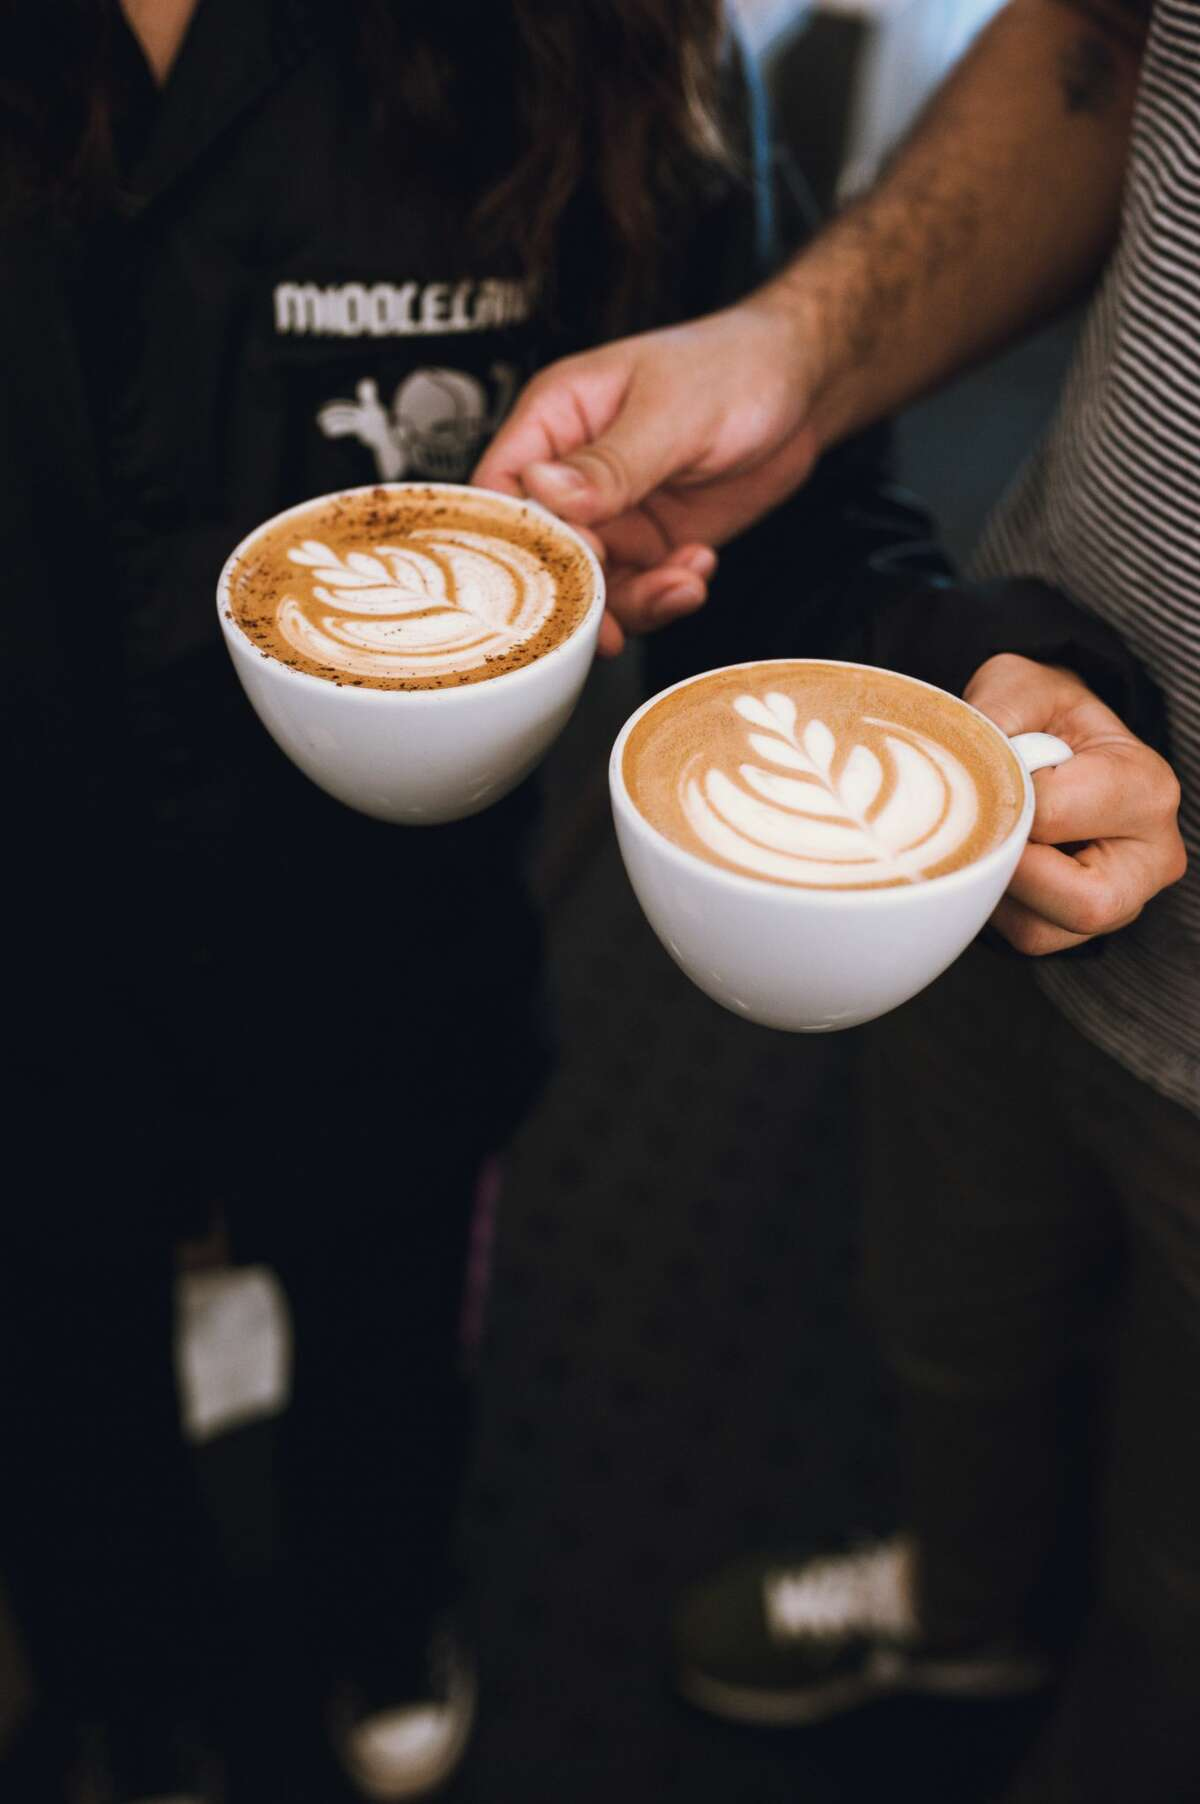 Boomtown Coffee is serving up the DGL (decorative gourd latte), which is a house-made pumpkin spice latte with real pumpkin, and a maple pecan latte.